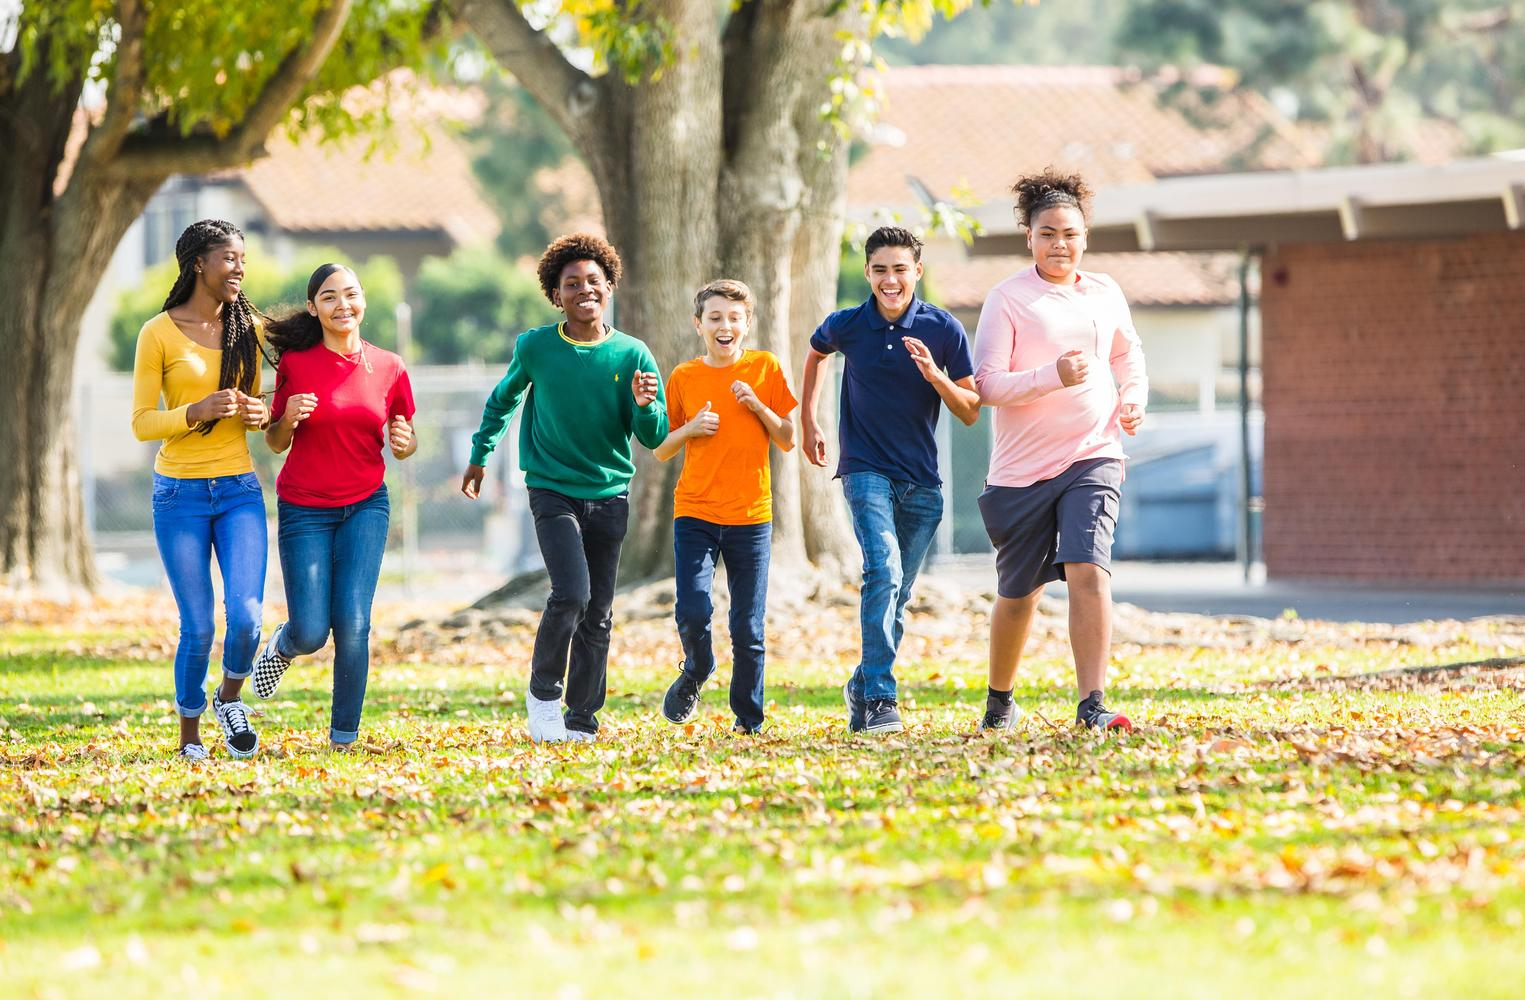 students walking on campus field